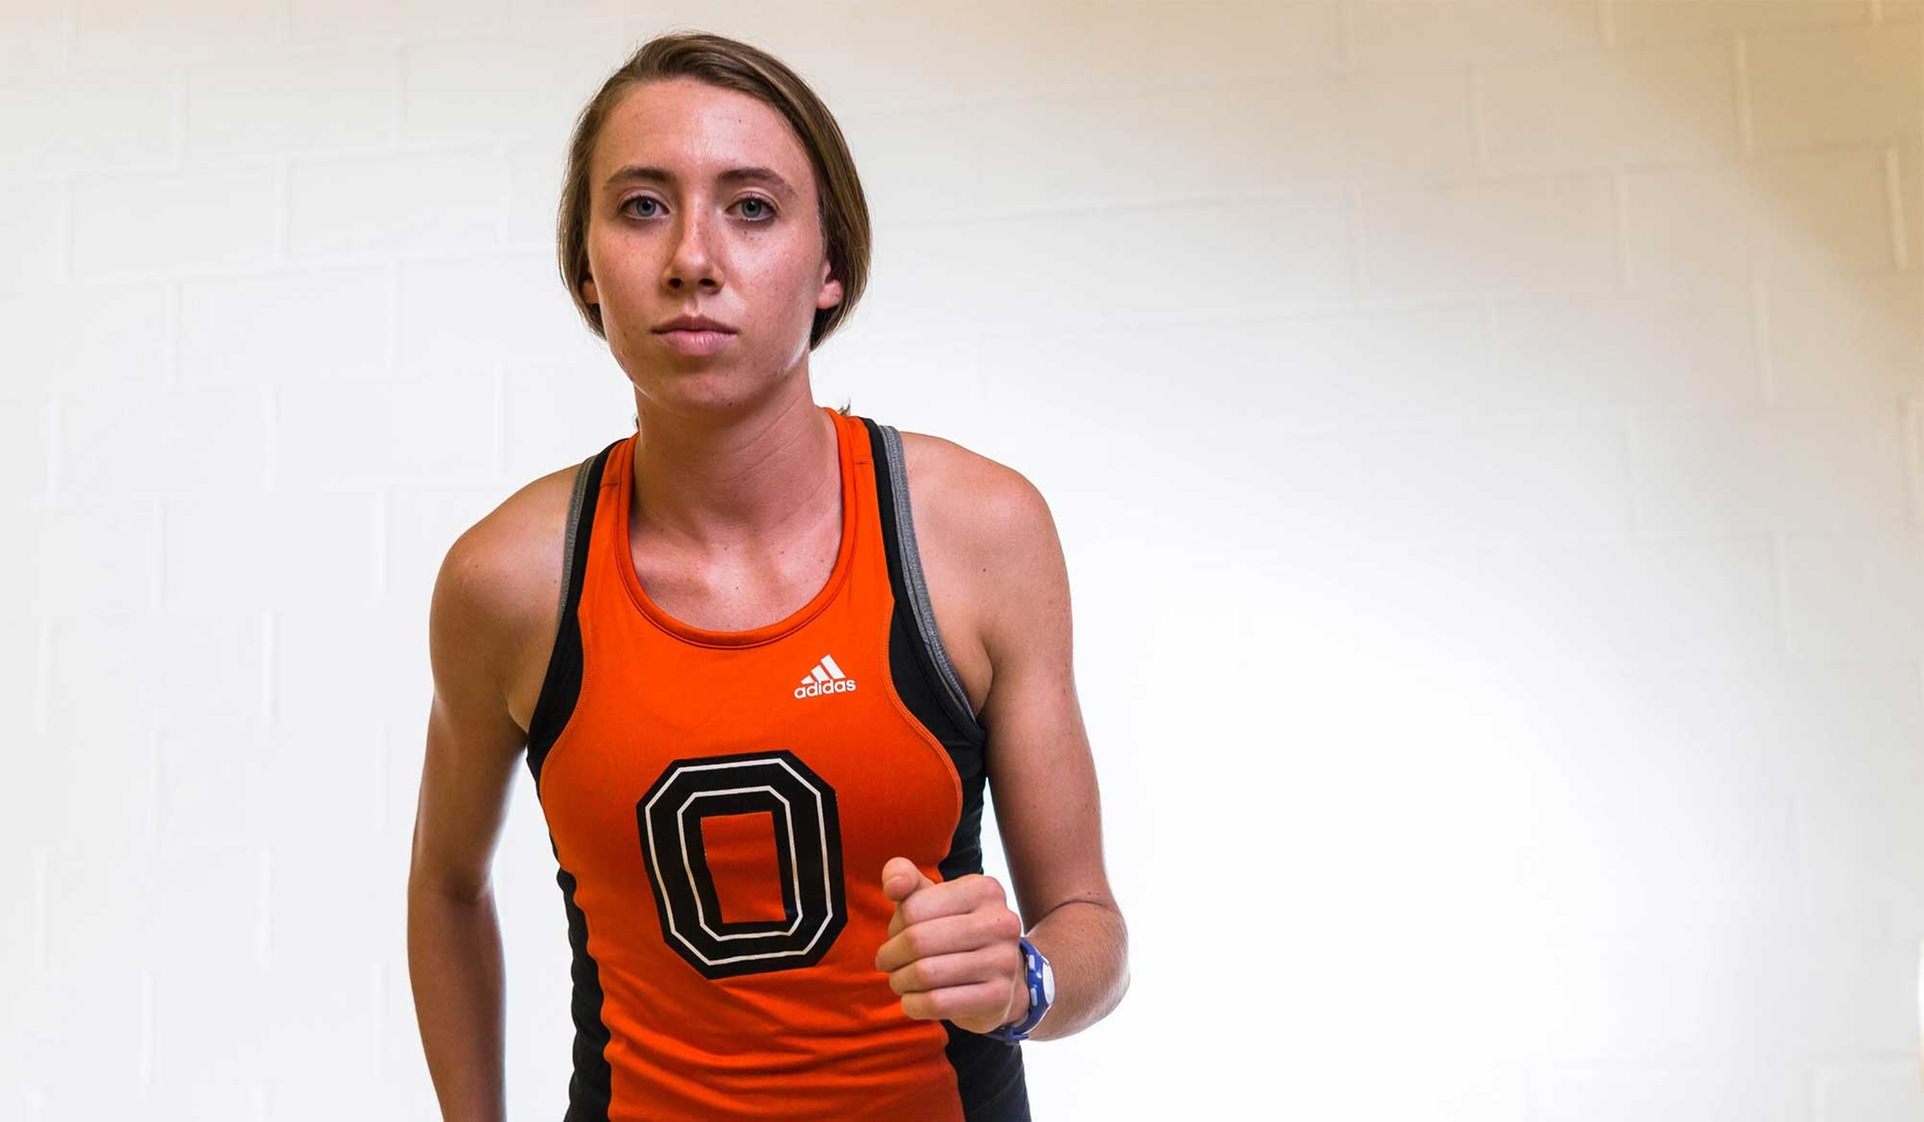 Oxy Competes at NCAA Division I UR Invite